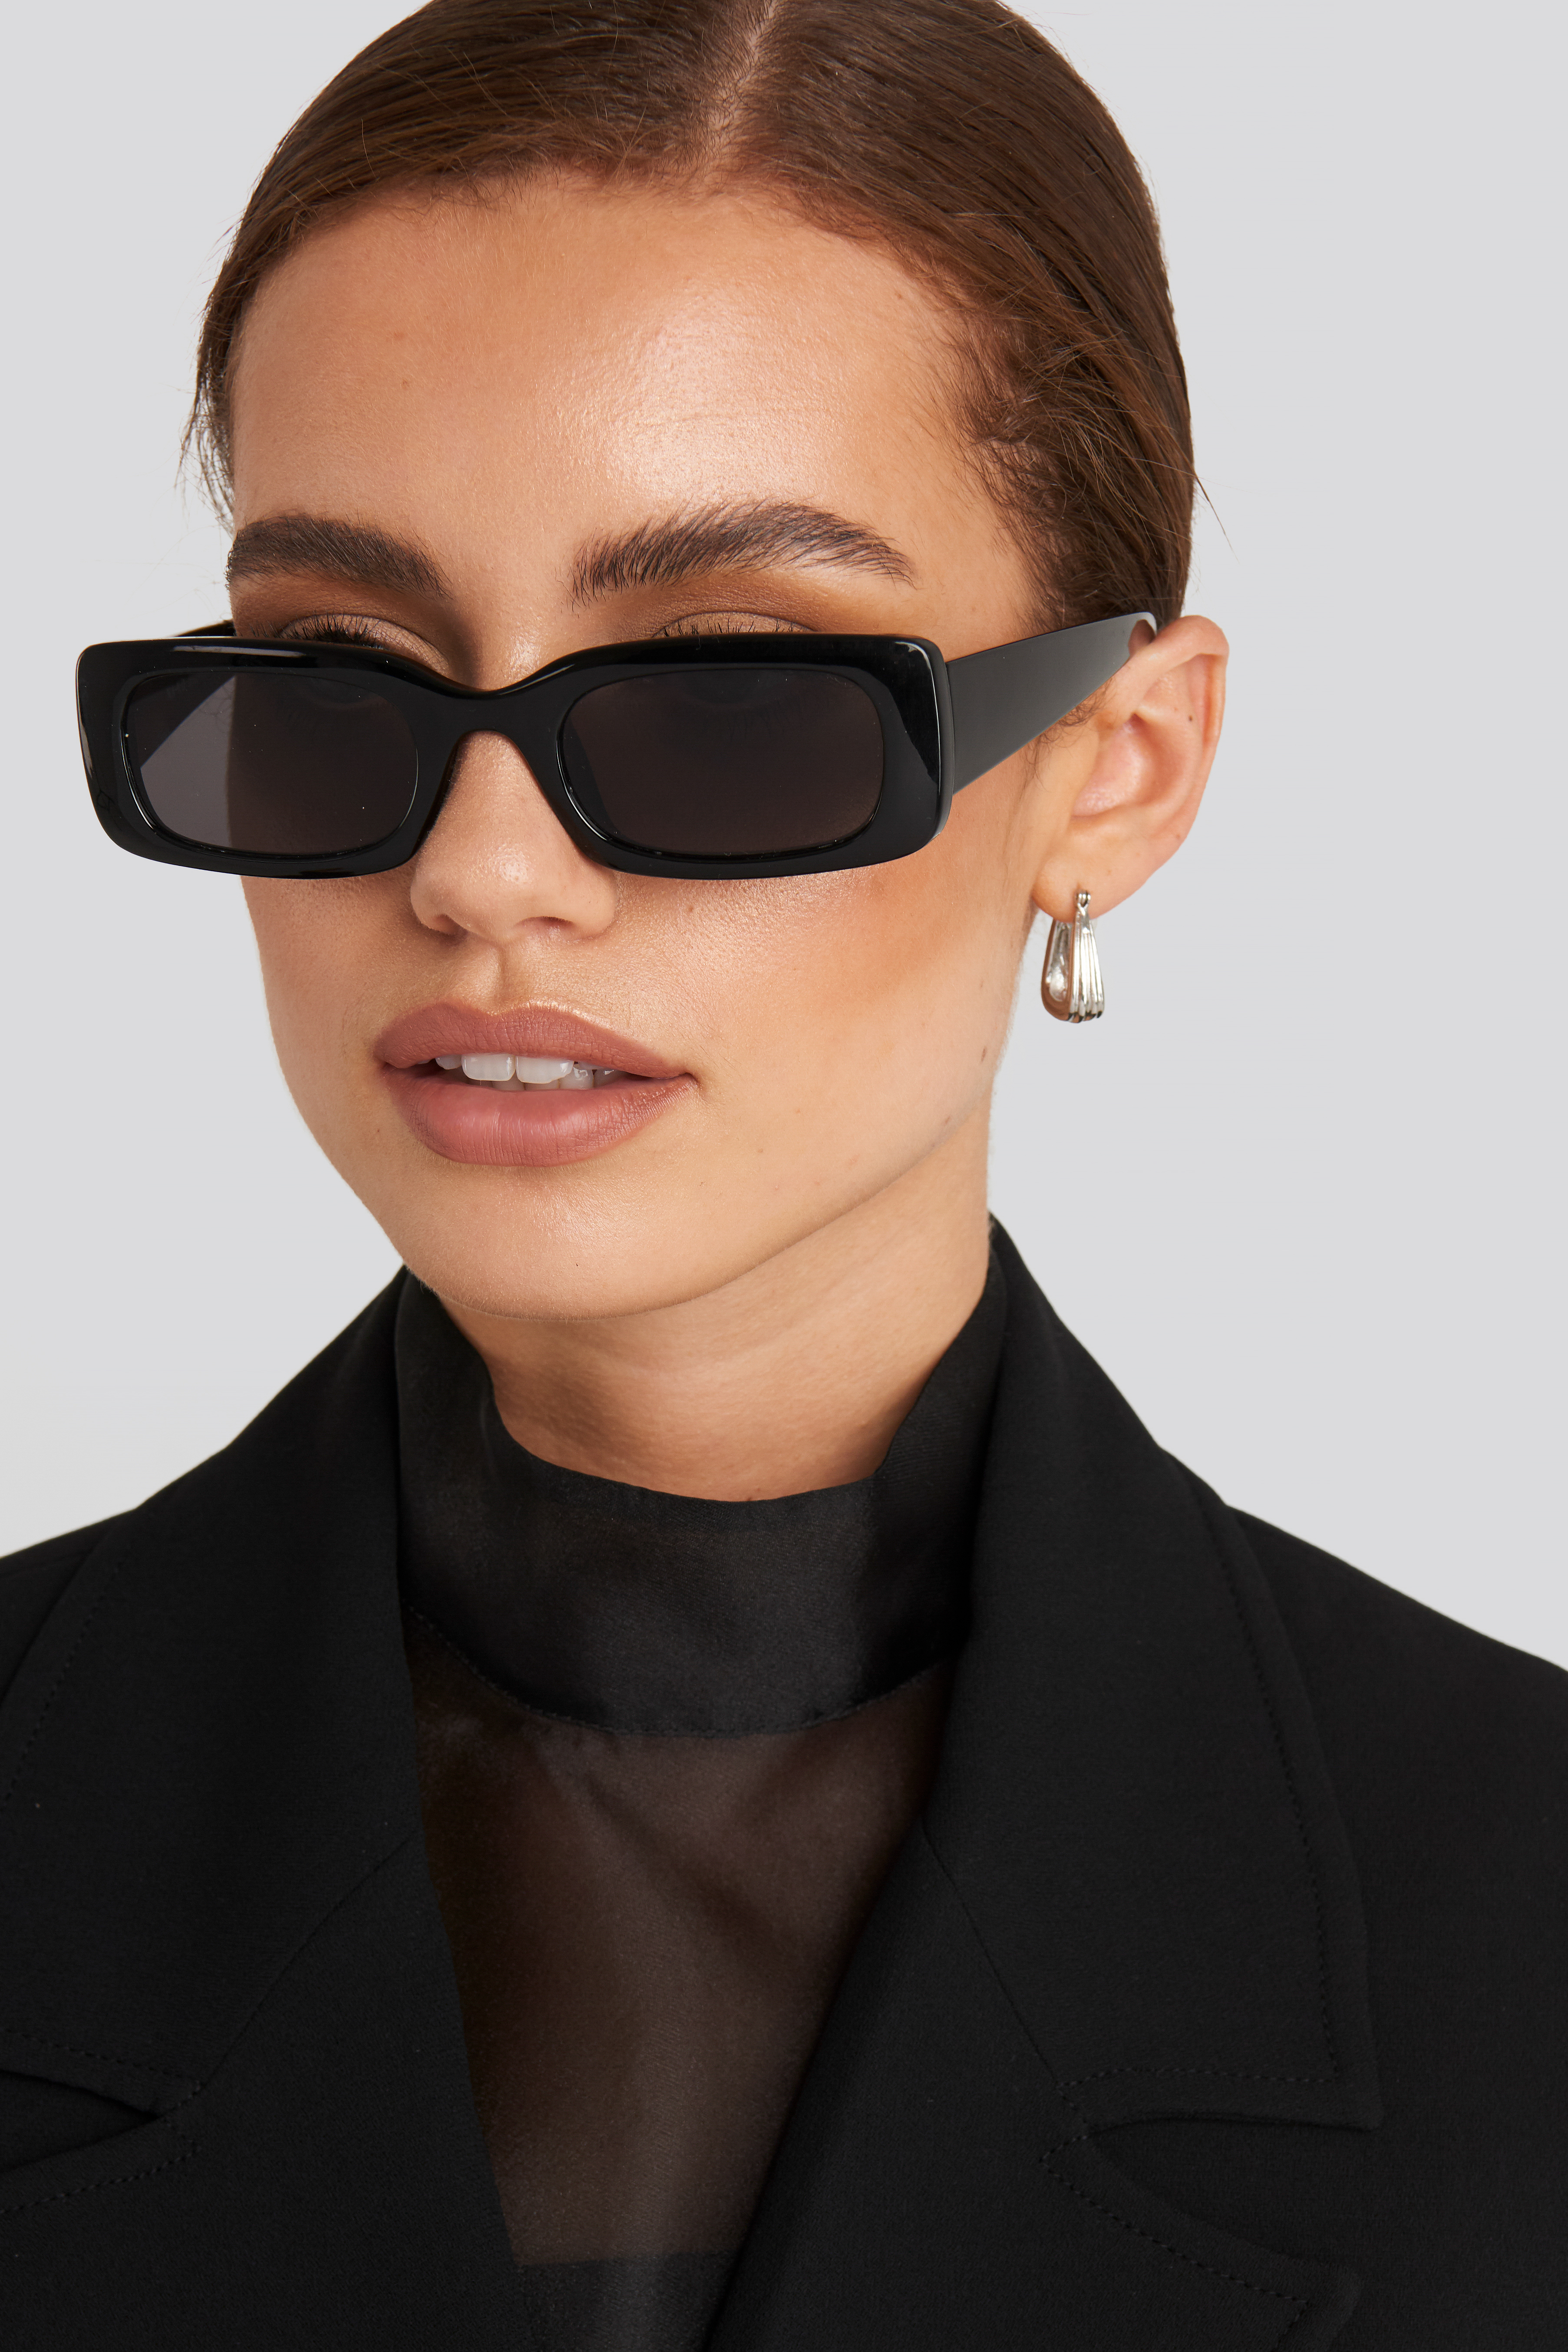 Black Wide Retro Look Sunglasses